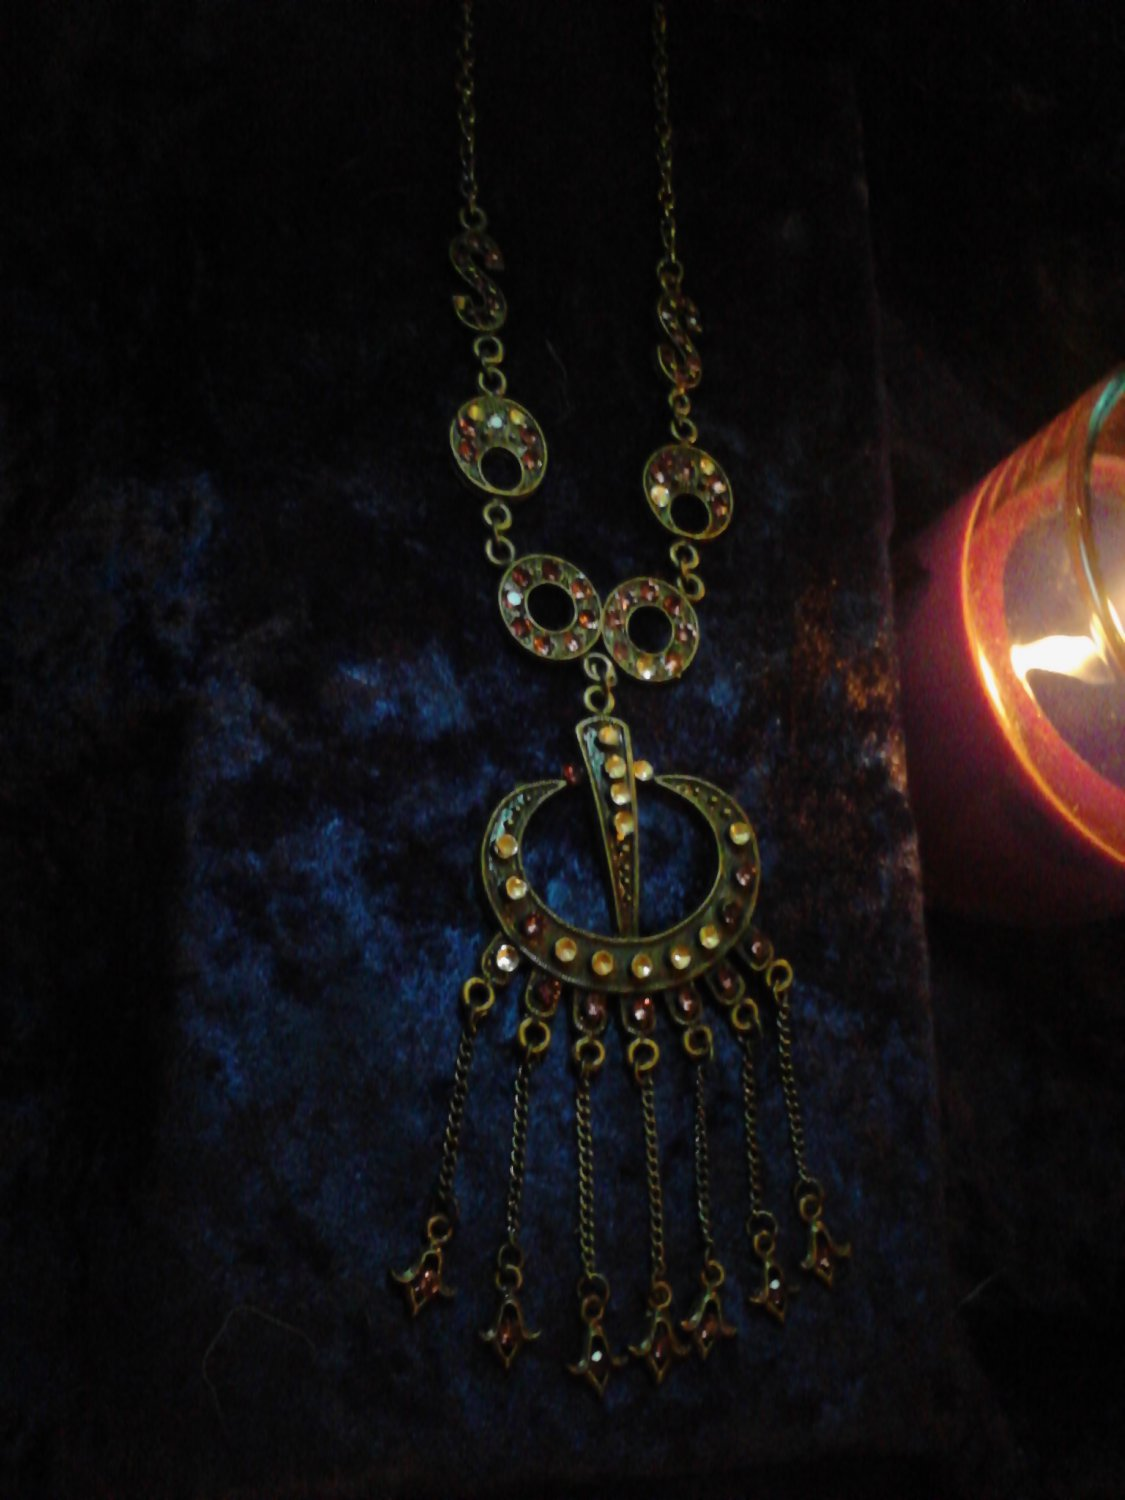 Haunted BECOME PSYCHIC necklace-Gain psychic abilities-attract spirits-use as pendulum,etc.